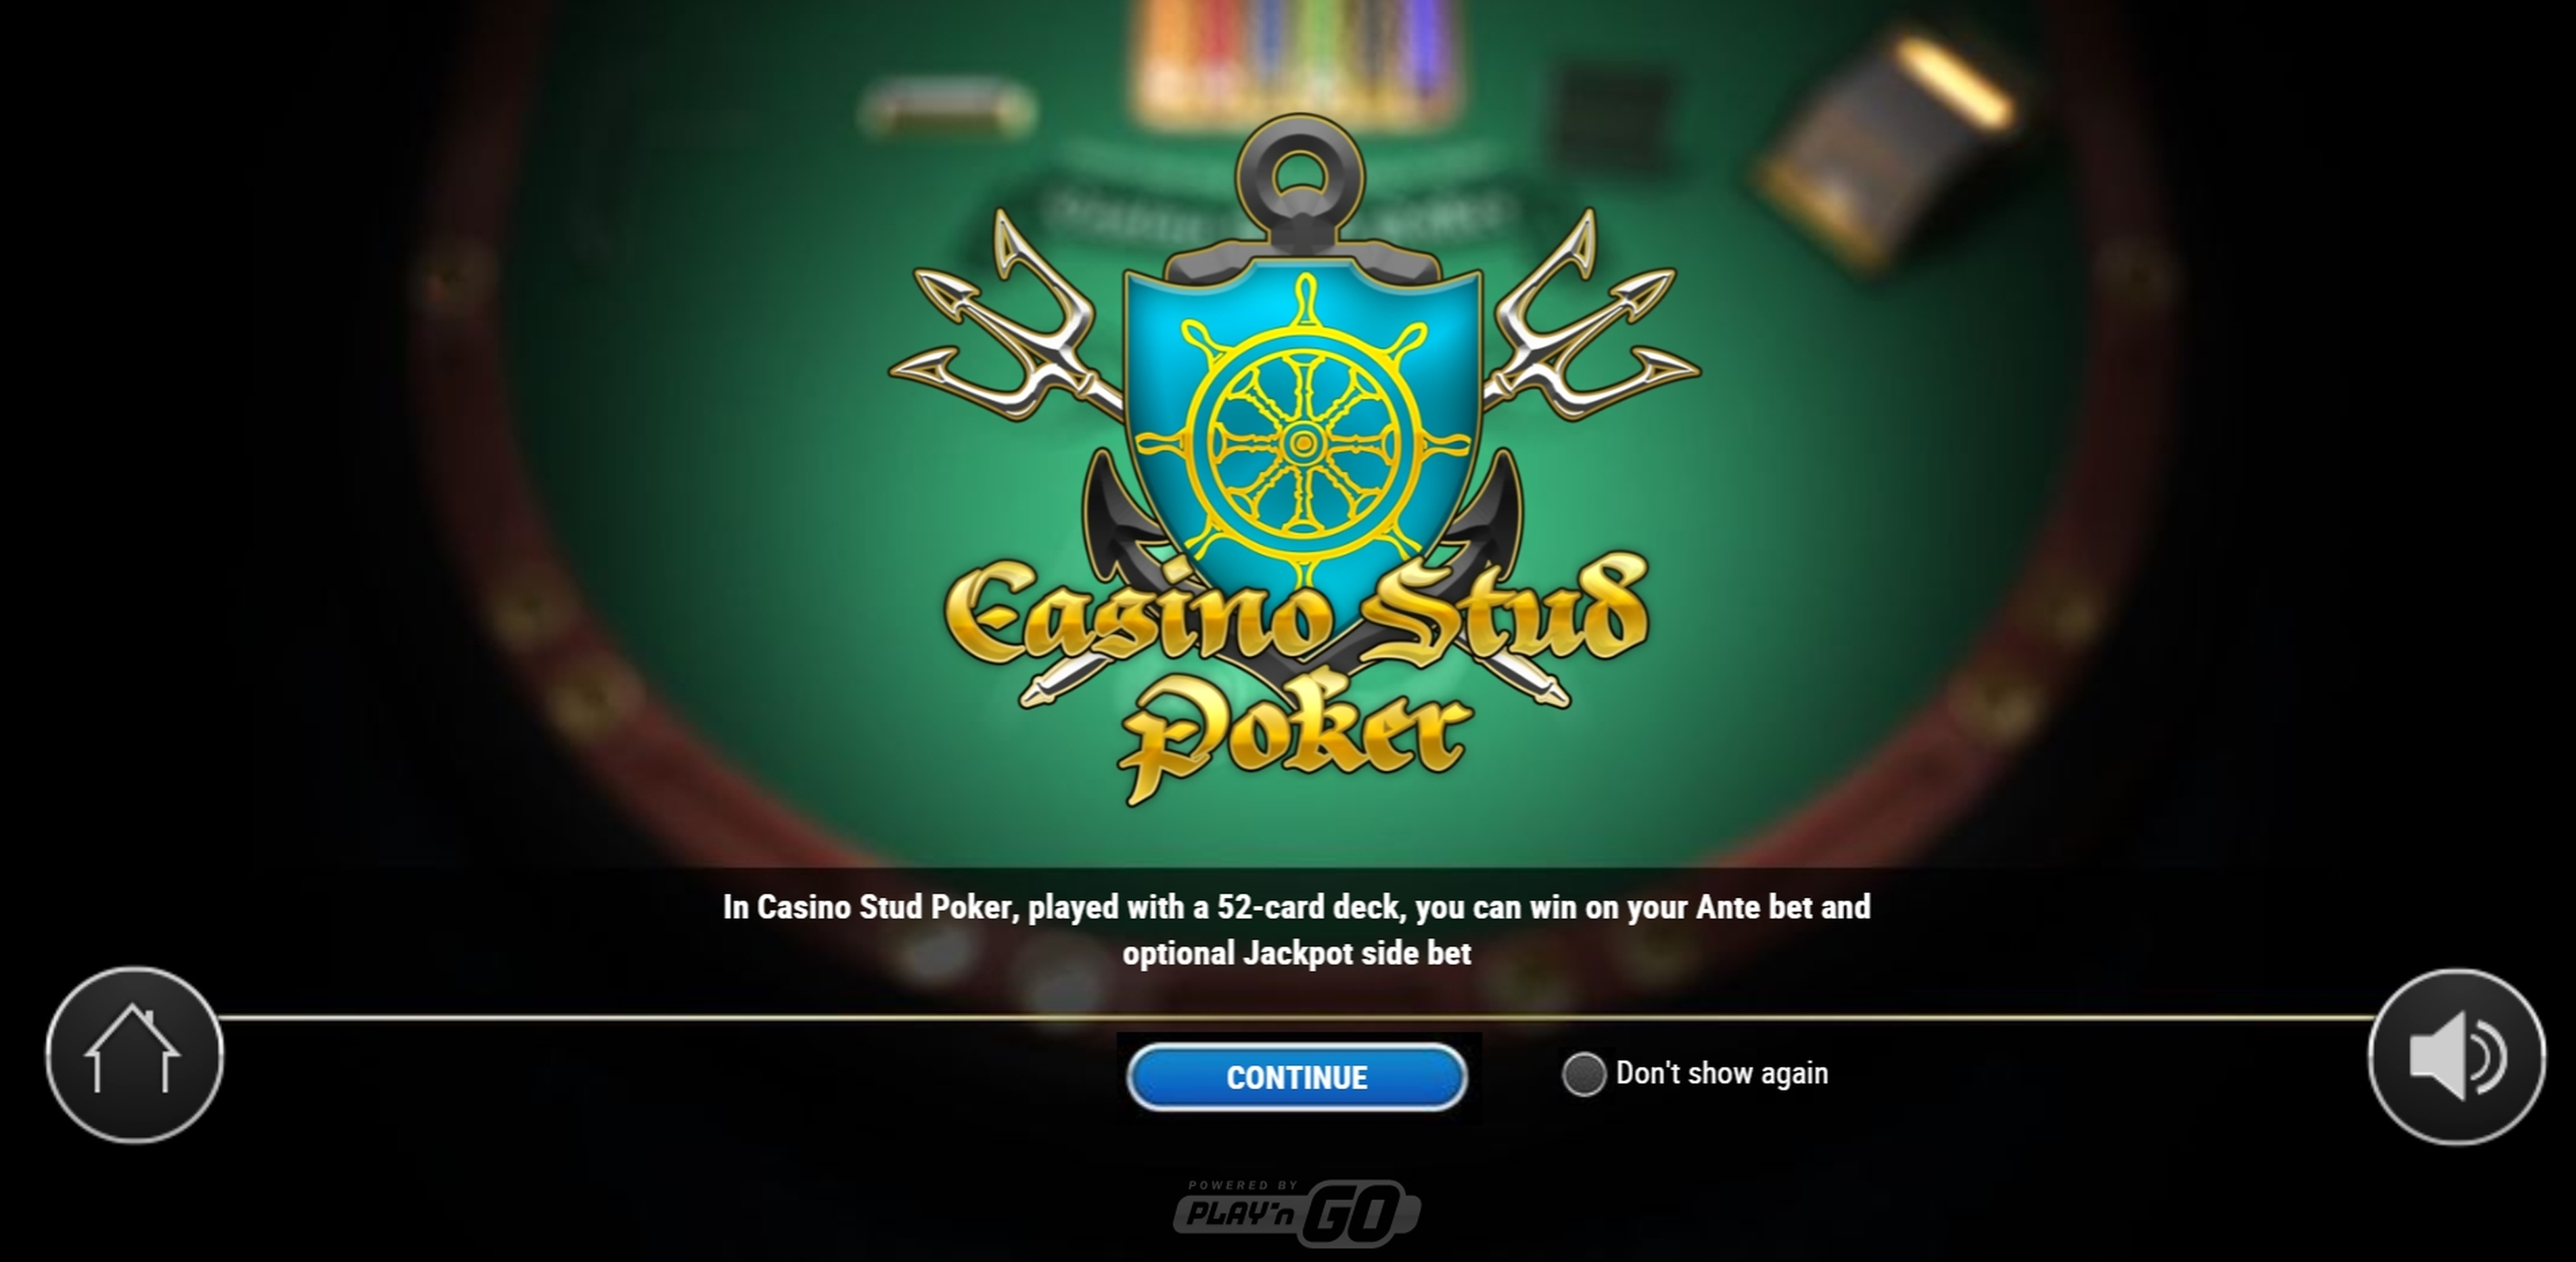 Play Casino Stud Poker (Play'n Go) Free Casino Slot Game by Playn GO